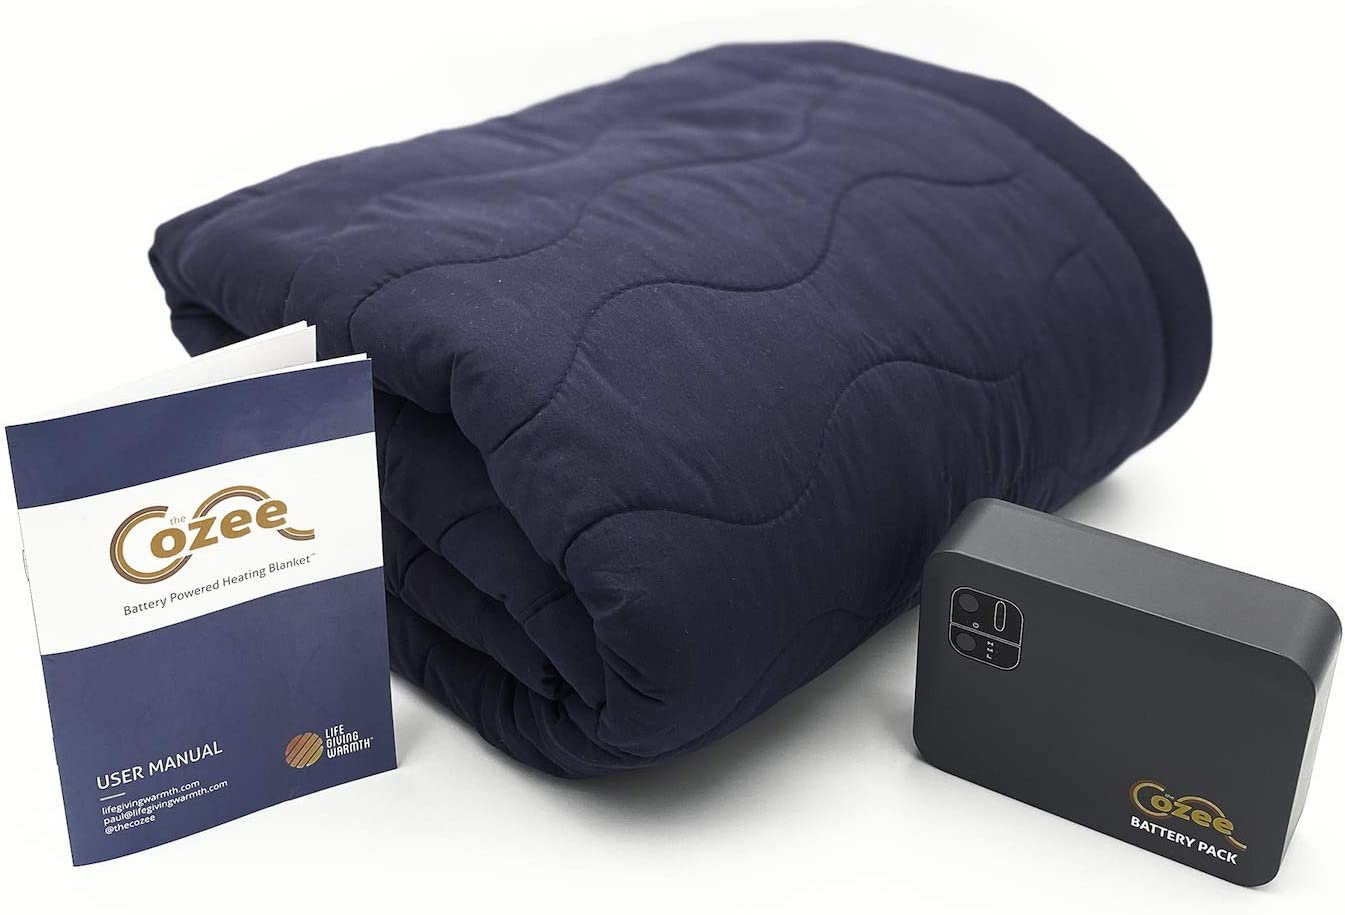 Cozee Battery Powered Heated Blanket